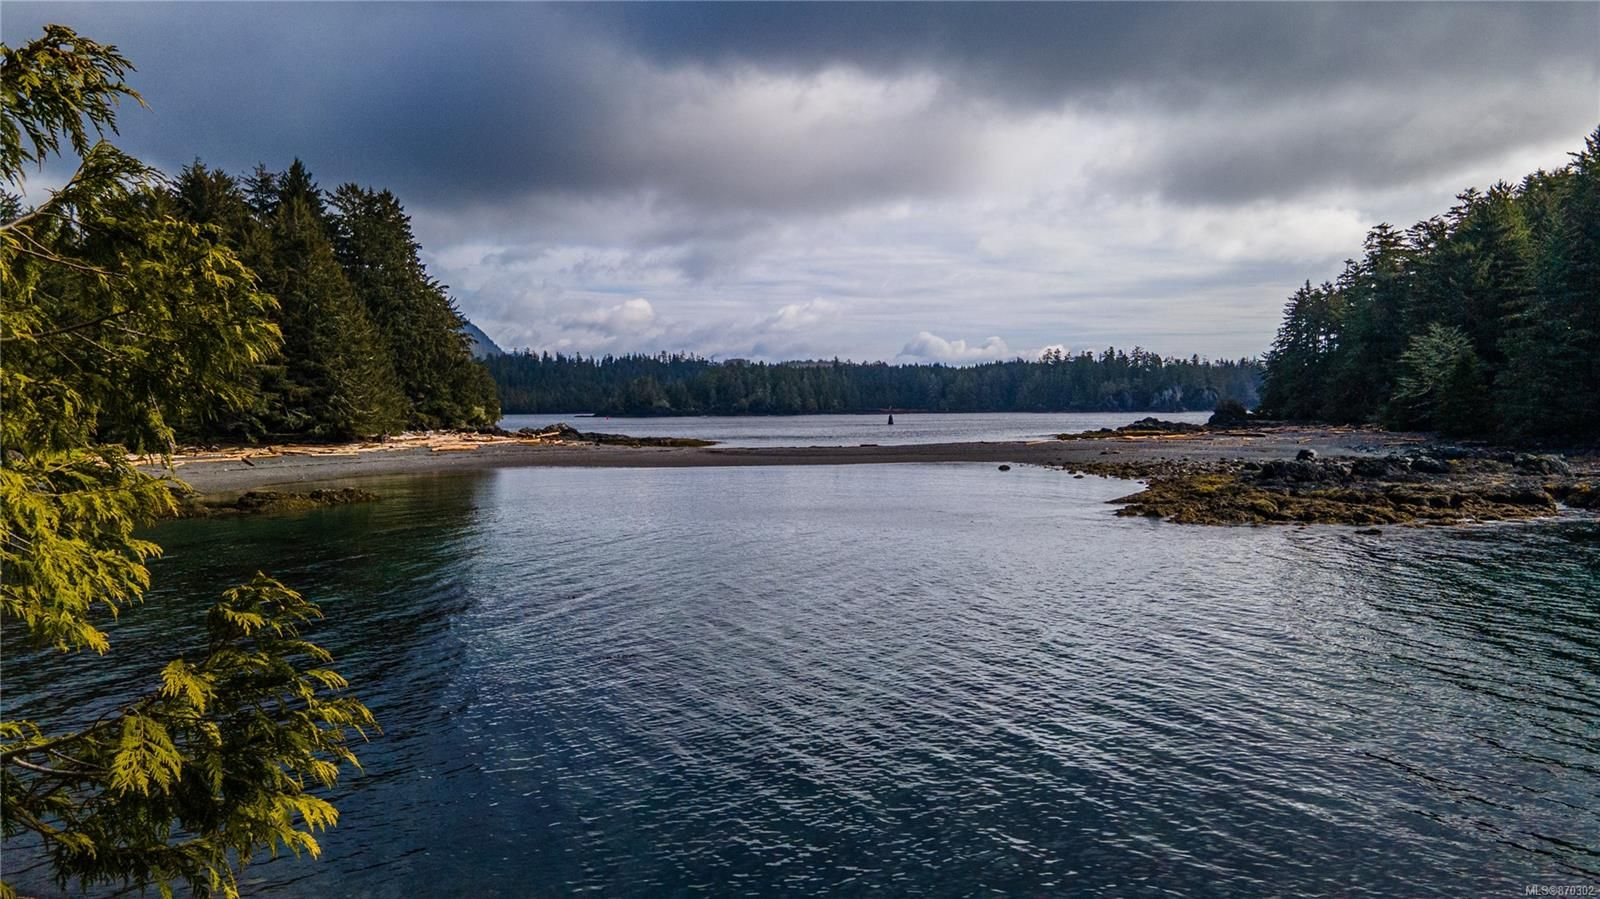 Main Photo: 863 Elina Rd in : PA Ucluelet Land for sale (Port Alberni)  : MLS®# 870302